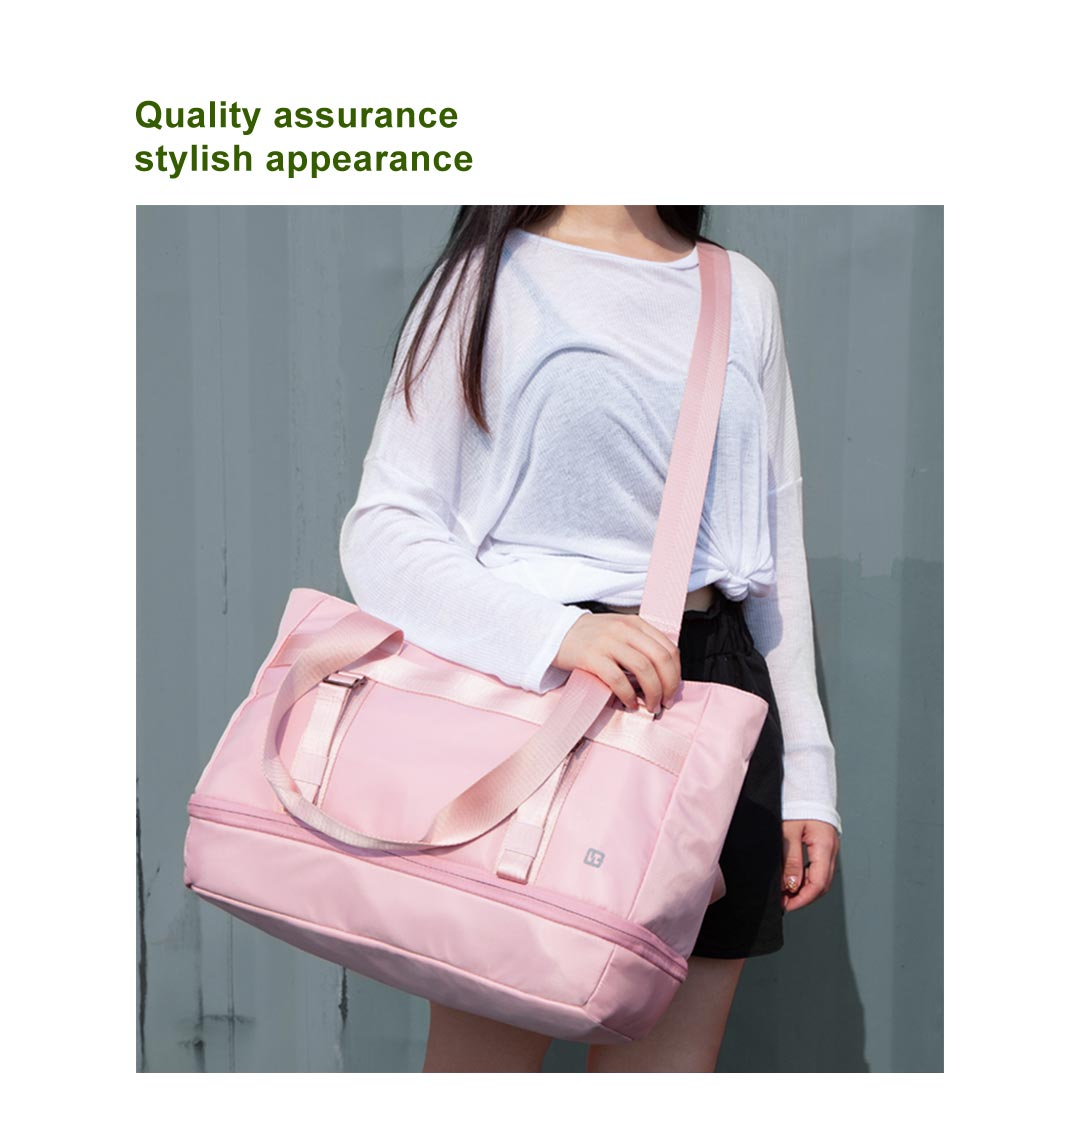 kingsons Yoga bagQuality assurance stylish appearance